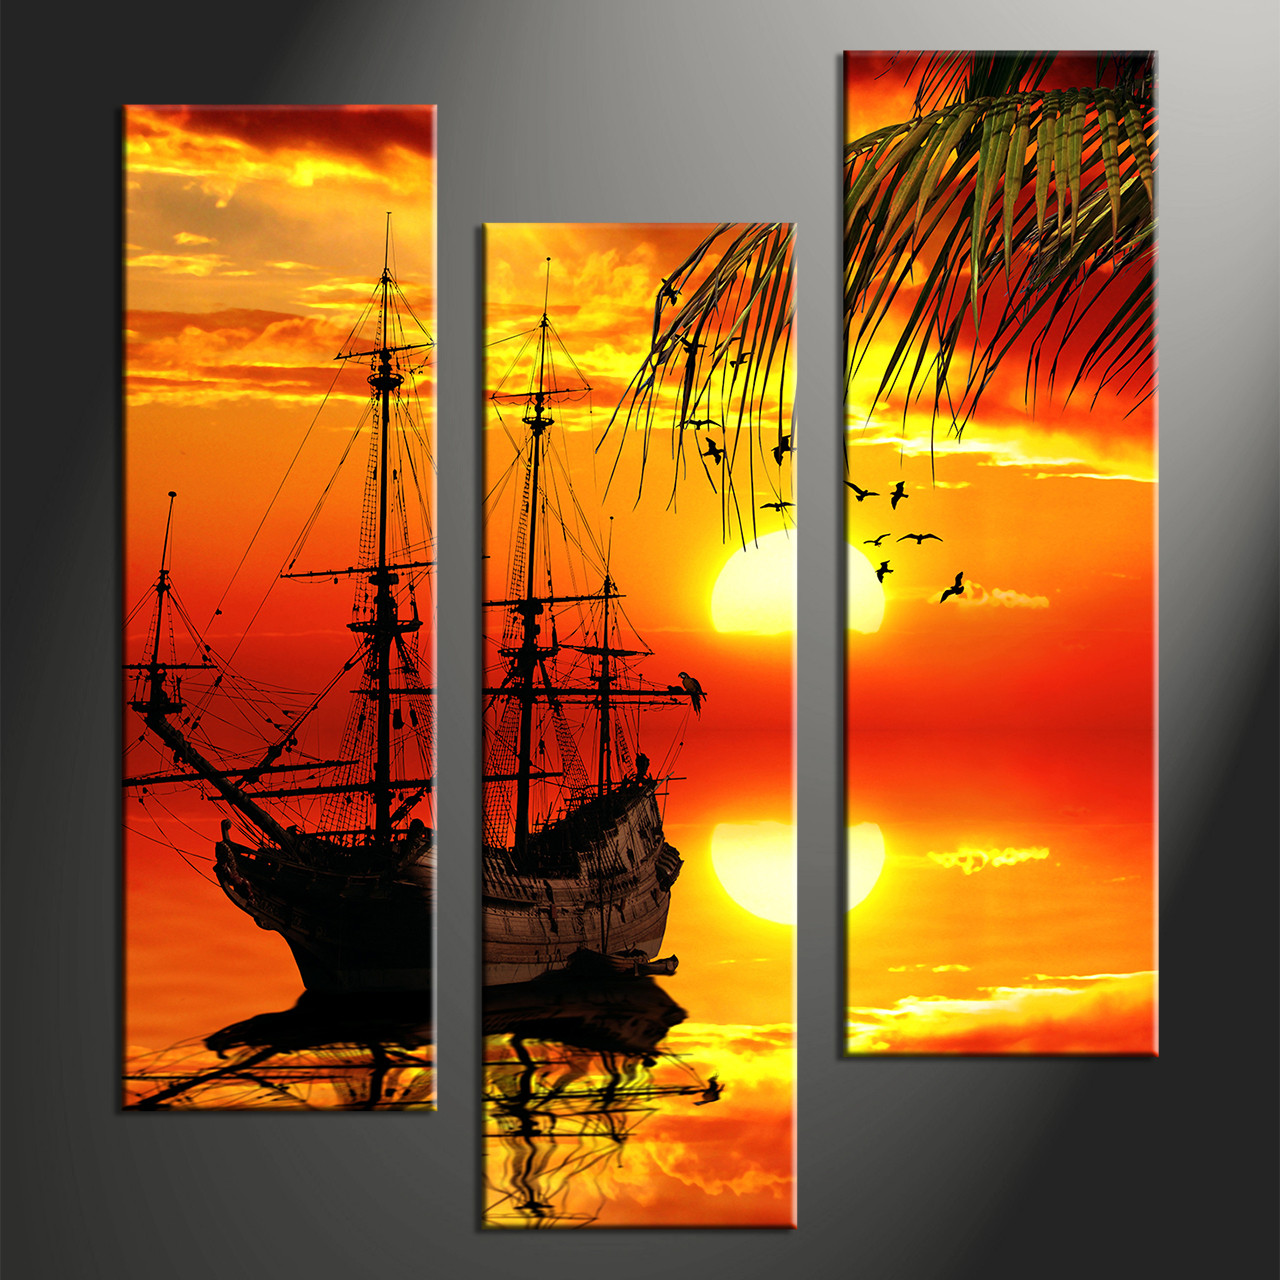 Wall Prints 3 Piece Red Sunset Ship Canvas Art Prints